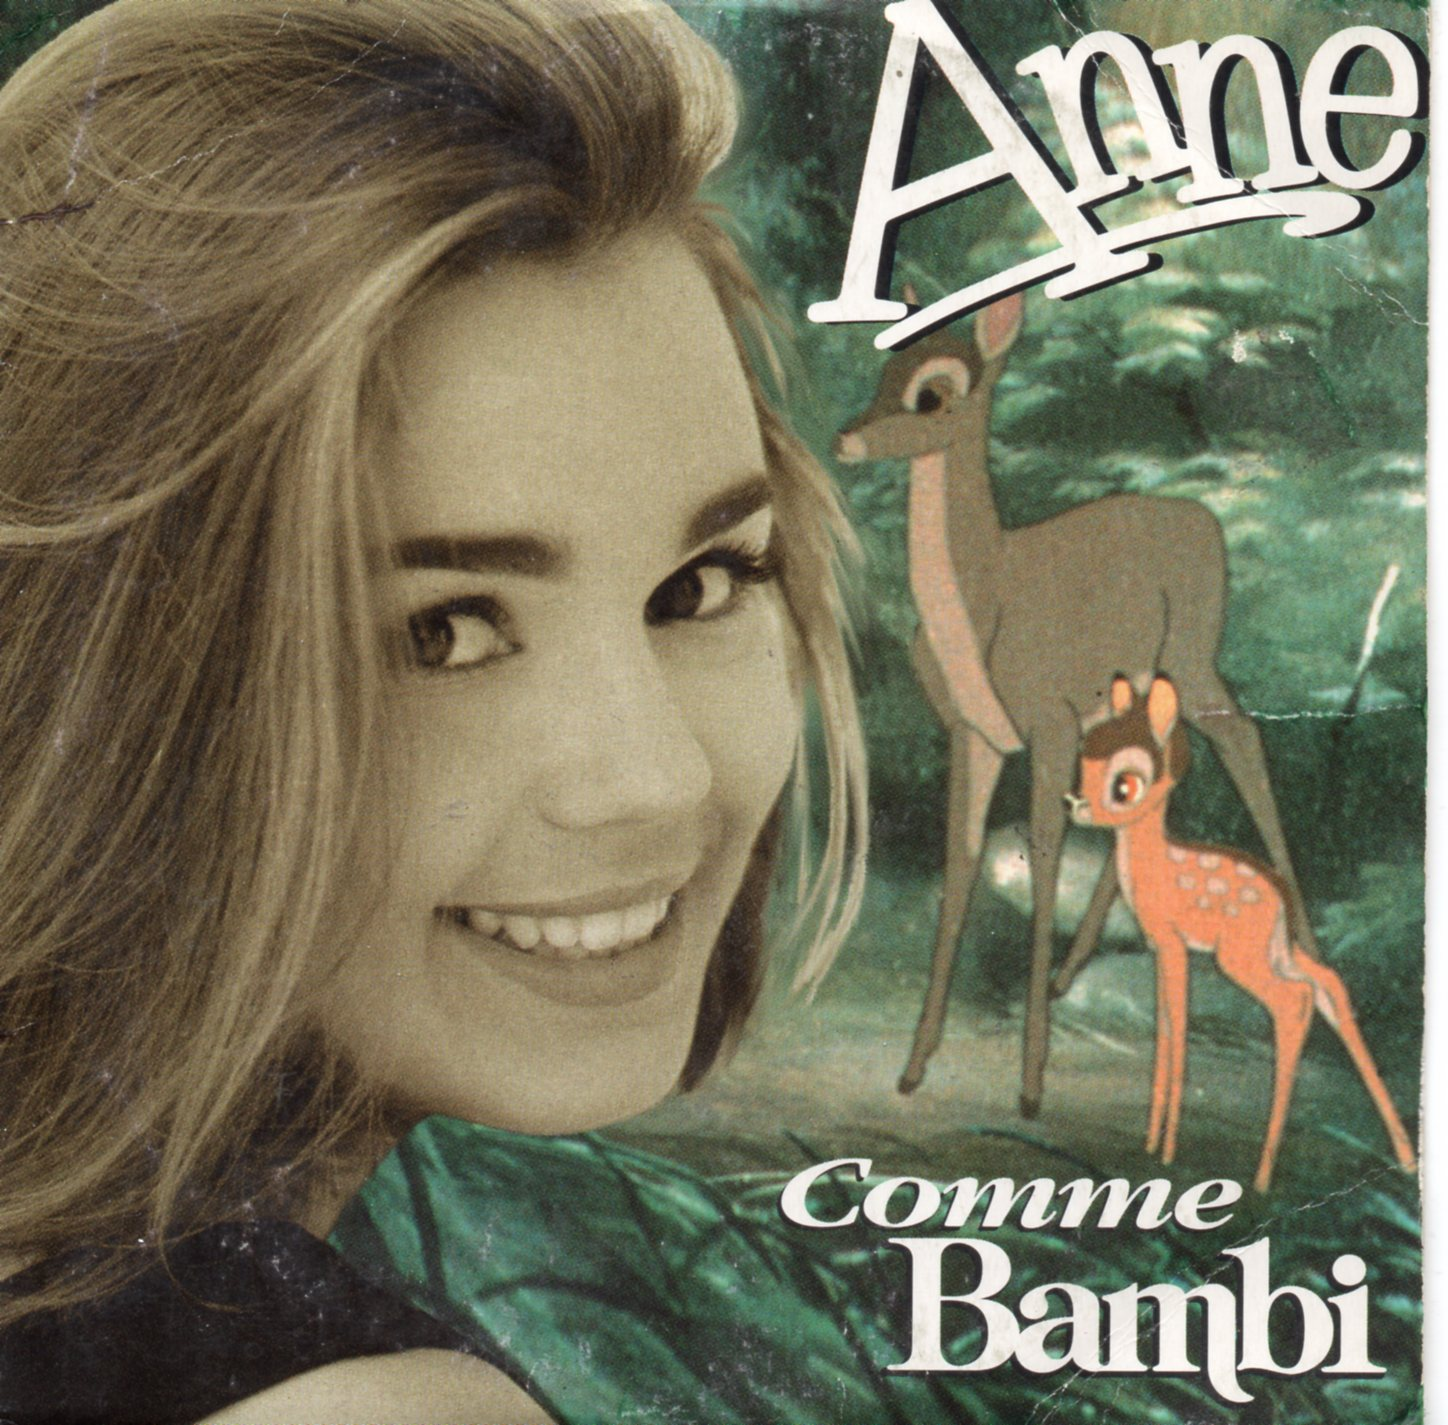 ANNE - WALT DISNEY - Comme Bambi 2-track CARD SLEEVE - CD single